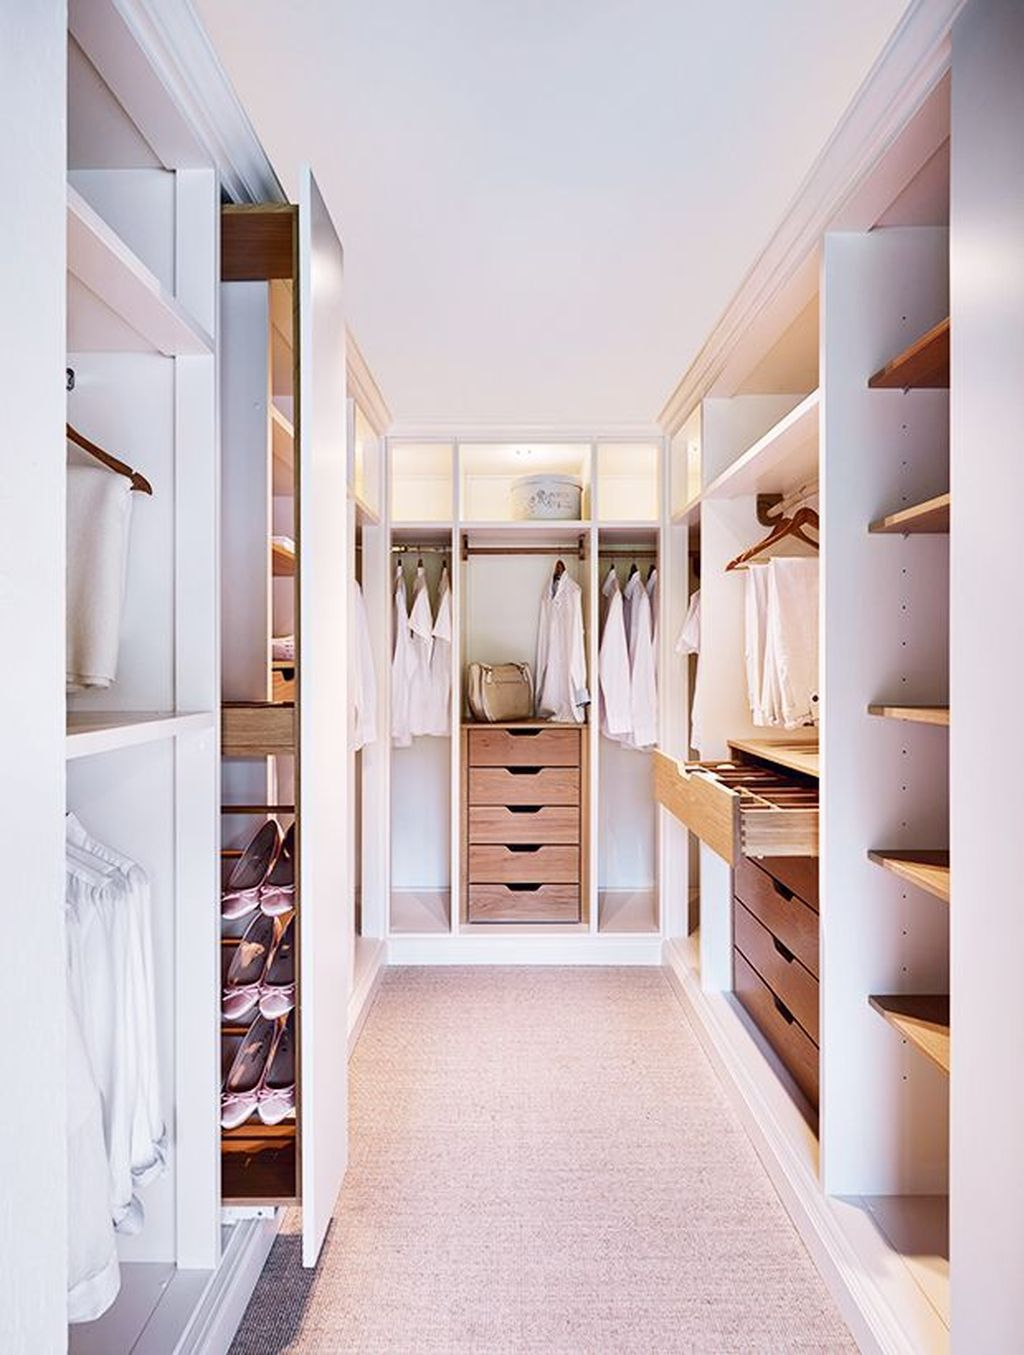 32 Master Bedroom And Bathroom Ideas Walk In Closet Inspiration Walk In Closet Design Closet Inspiration